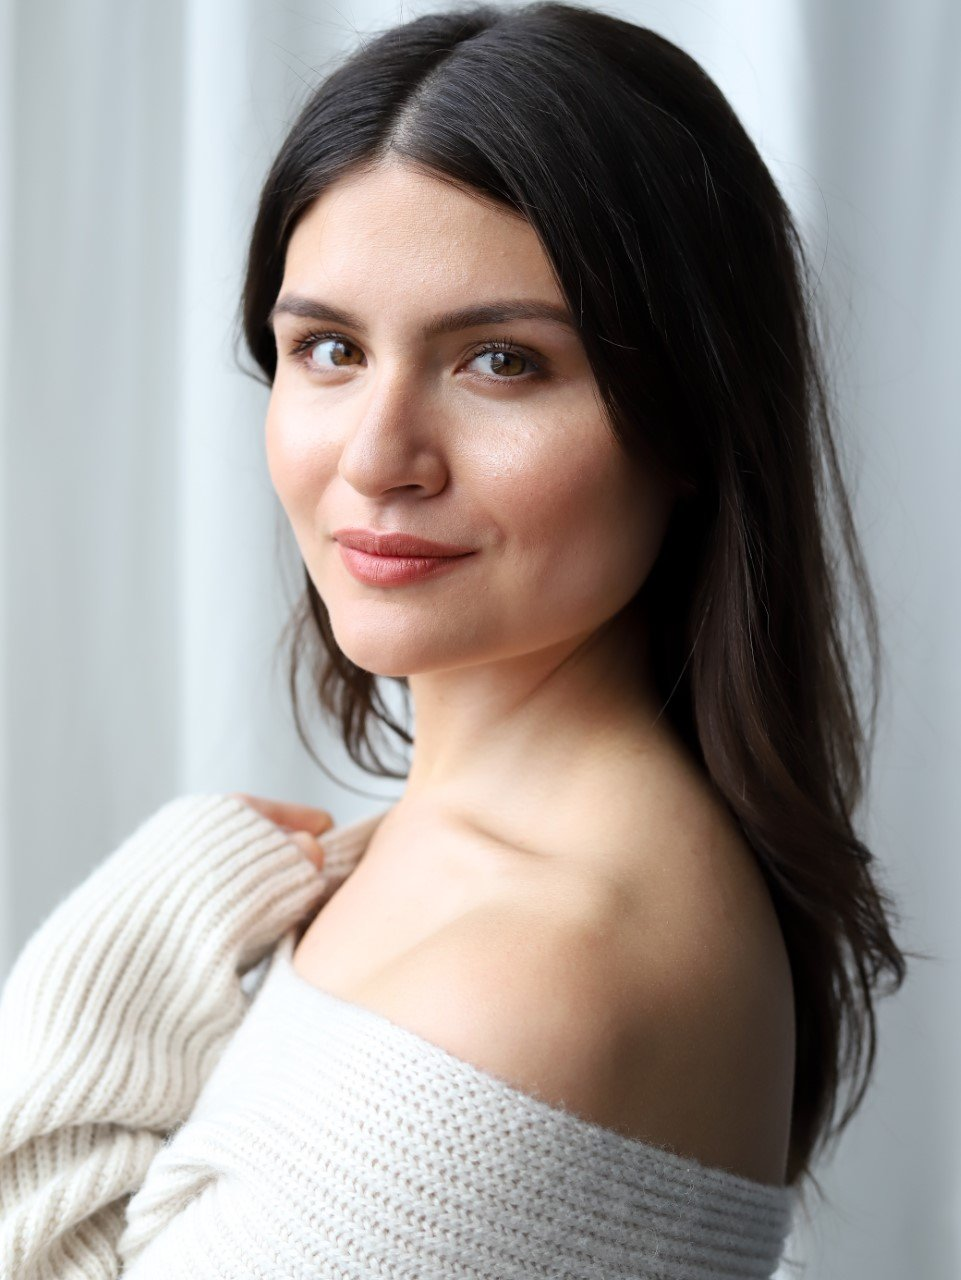 Phillipa Soo headshot. She is wearing a beige off-the-shoulder sweater.